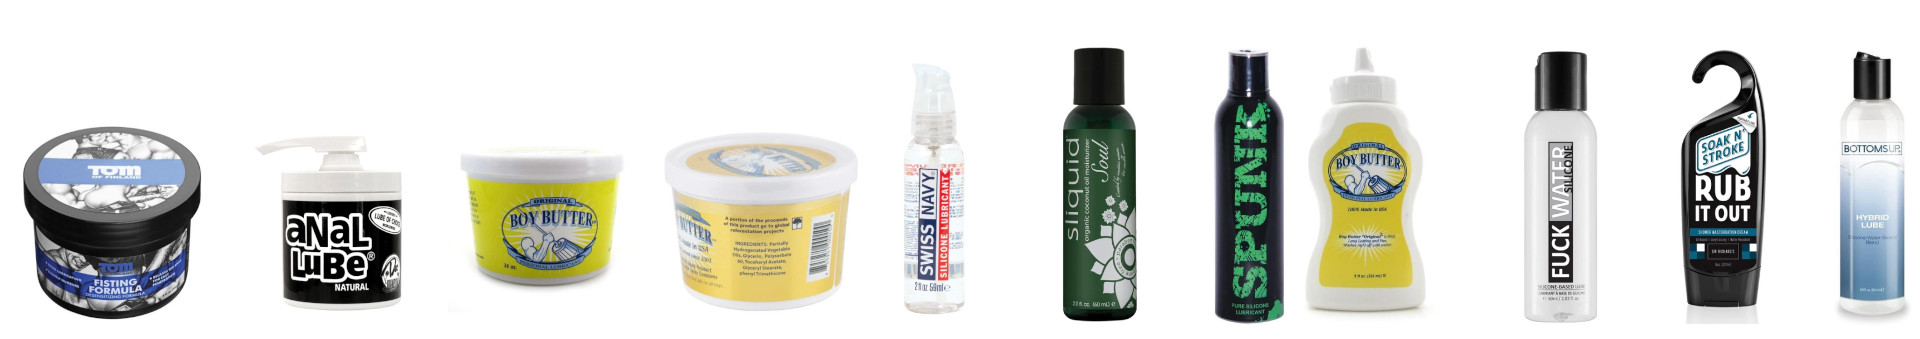 Oil-based lubes are popular because they last forever, offer a smooth ride, and are great for foreplay.